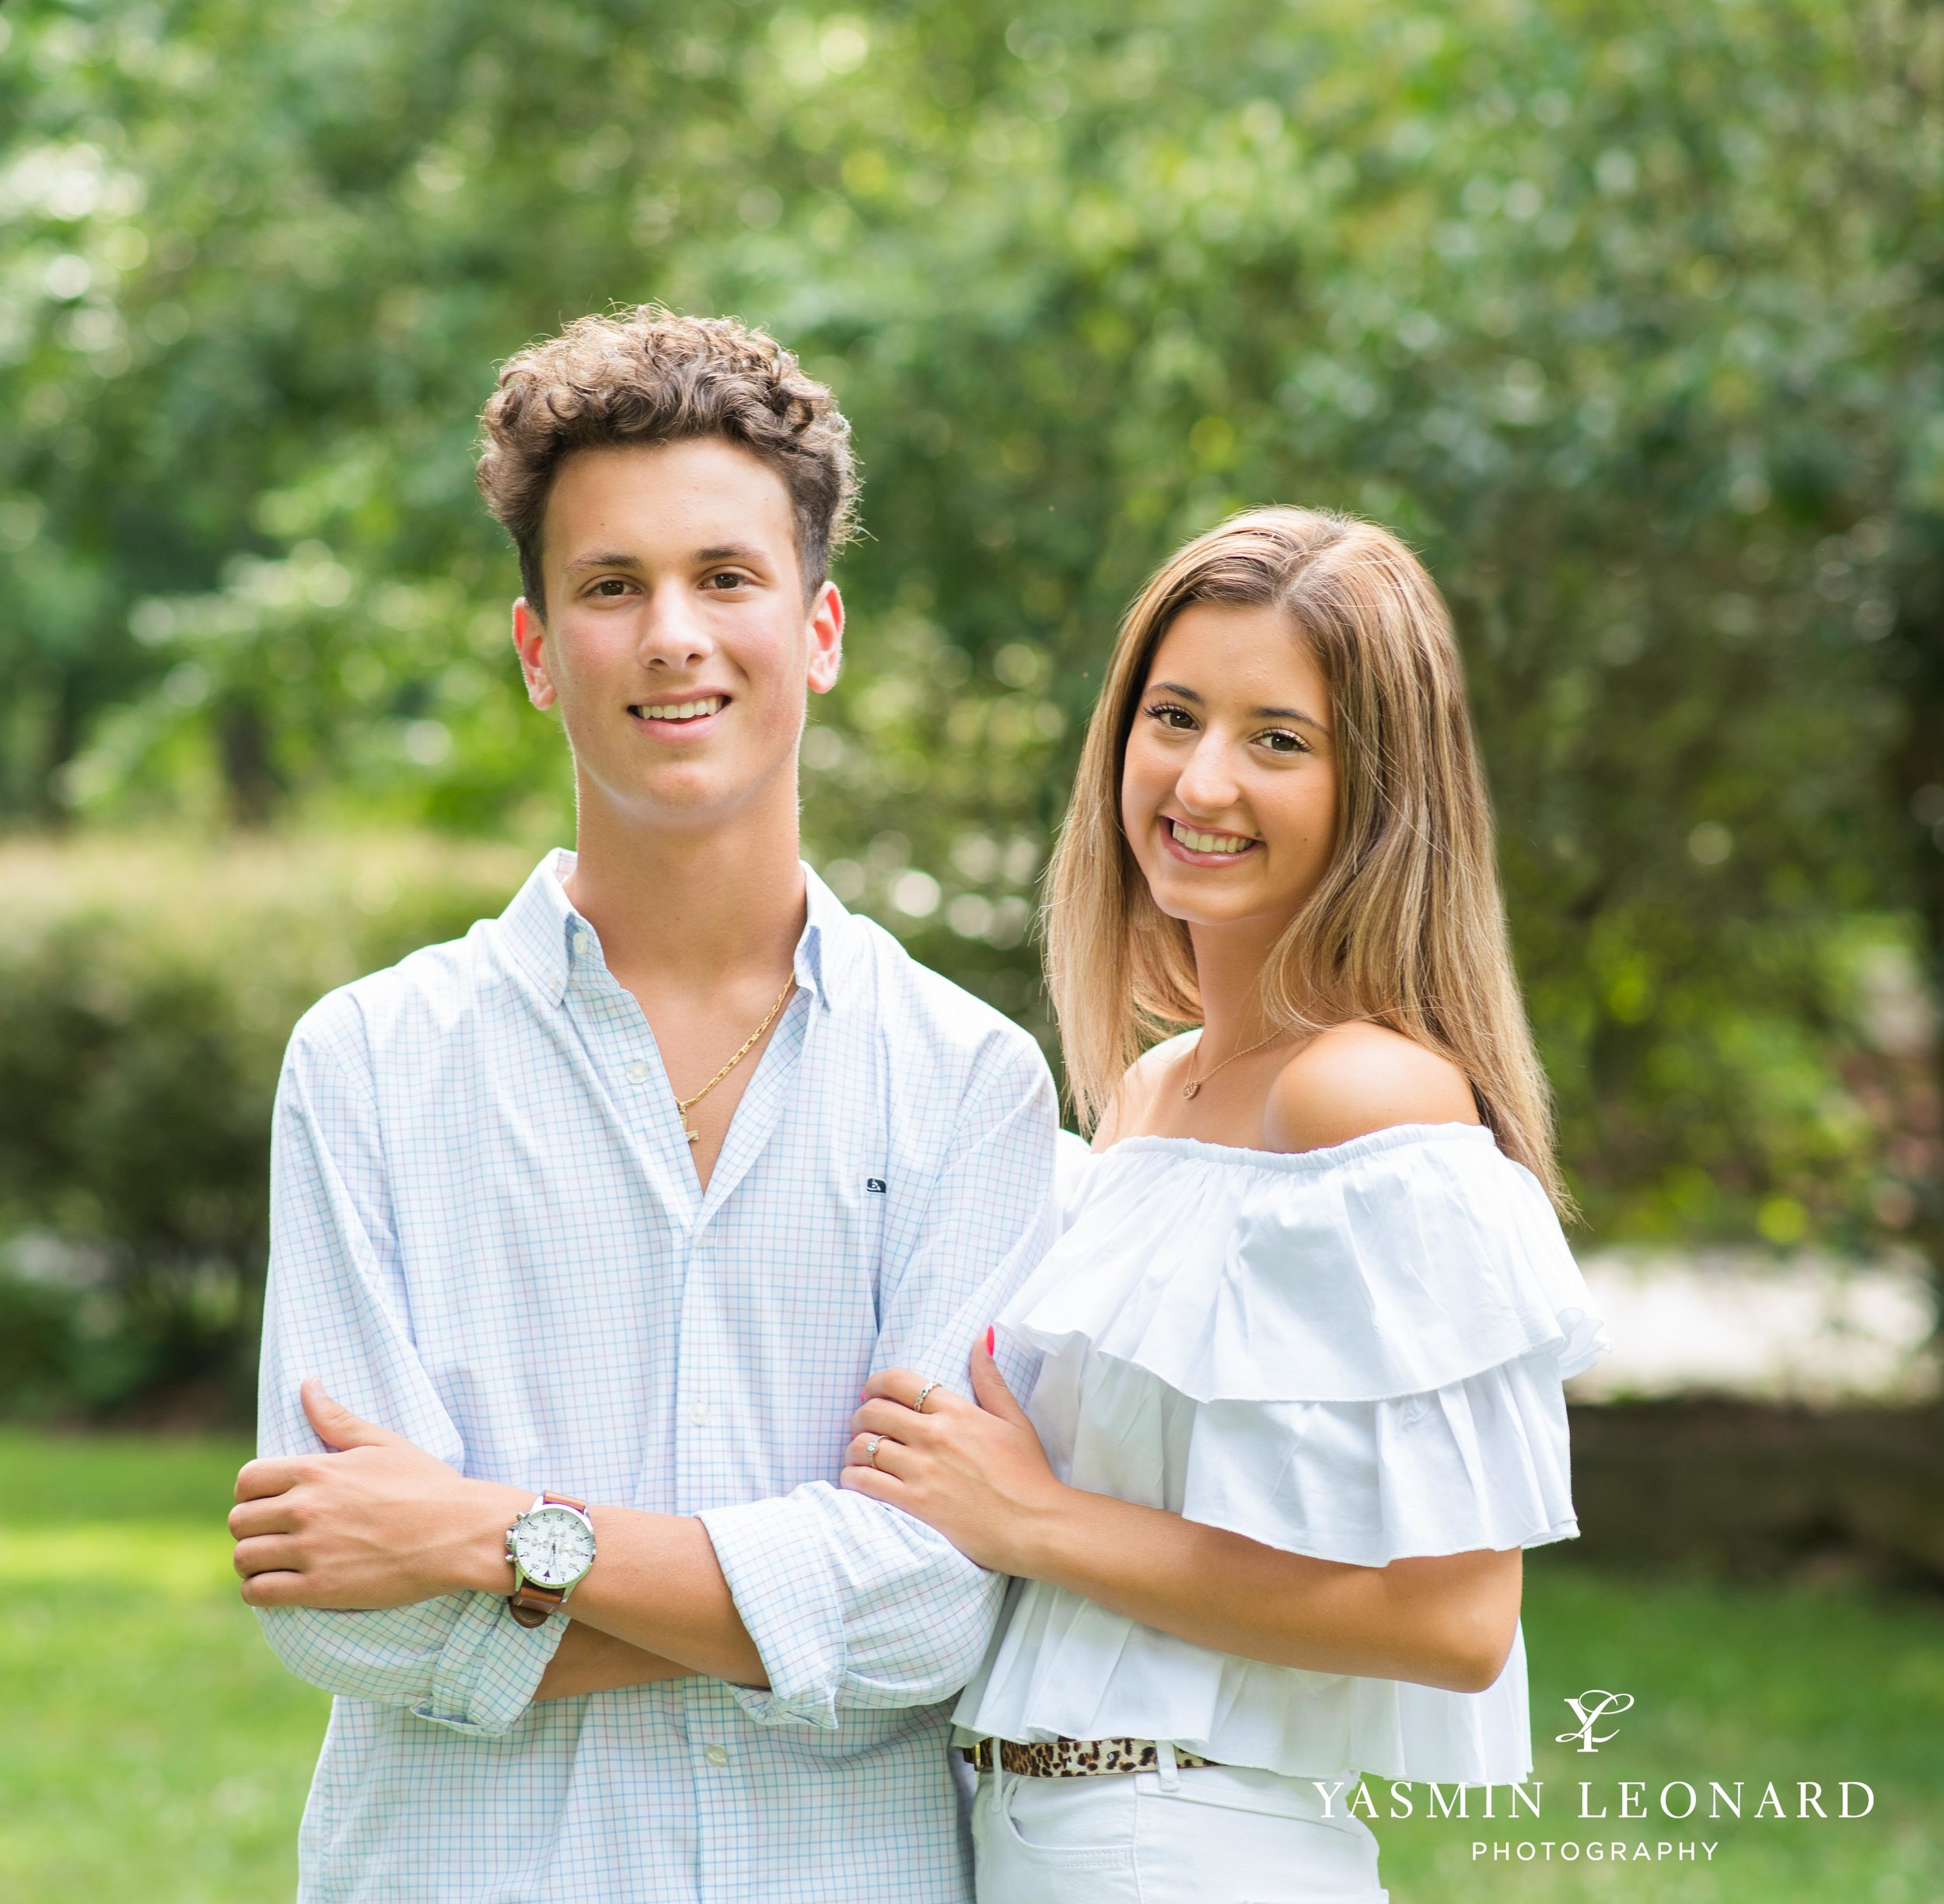 Twin Senior Portraits - Senior Pictures with your twin - How to pose twins - NC SEnior - Senior Pictures - Senior Twins - High Point Senior Portraits - Winston Senior Portraits - Yasmin Leonard Photography-2.jpg